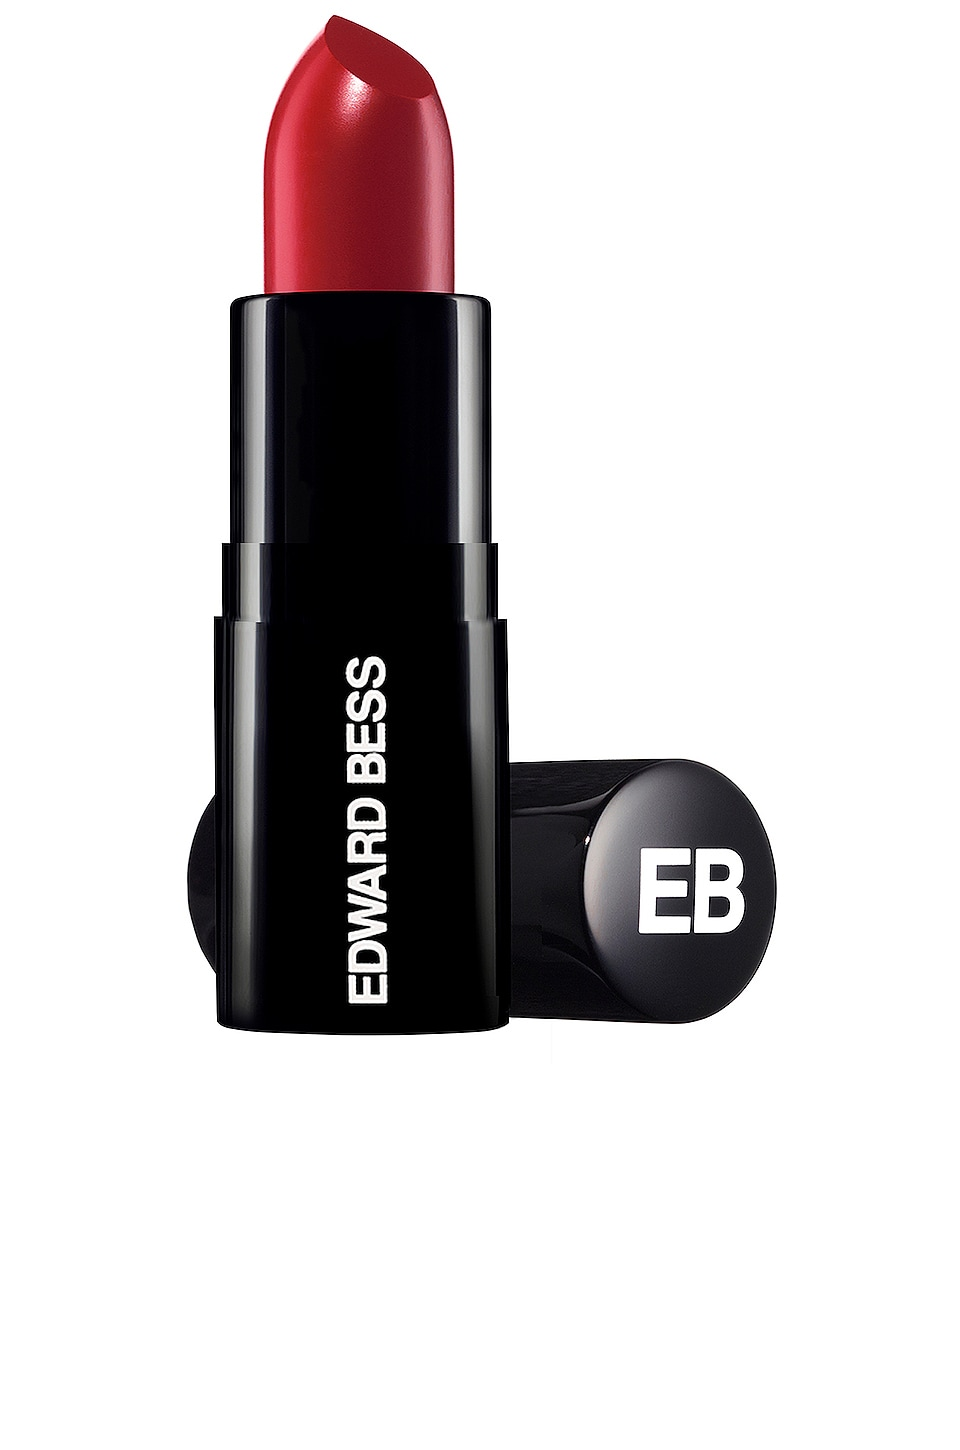 Edward Bess Ultra Slick Jumbo Lipstick in Big Kiss